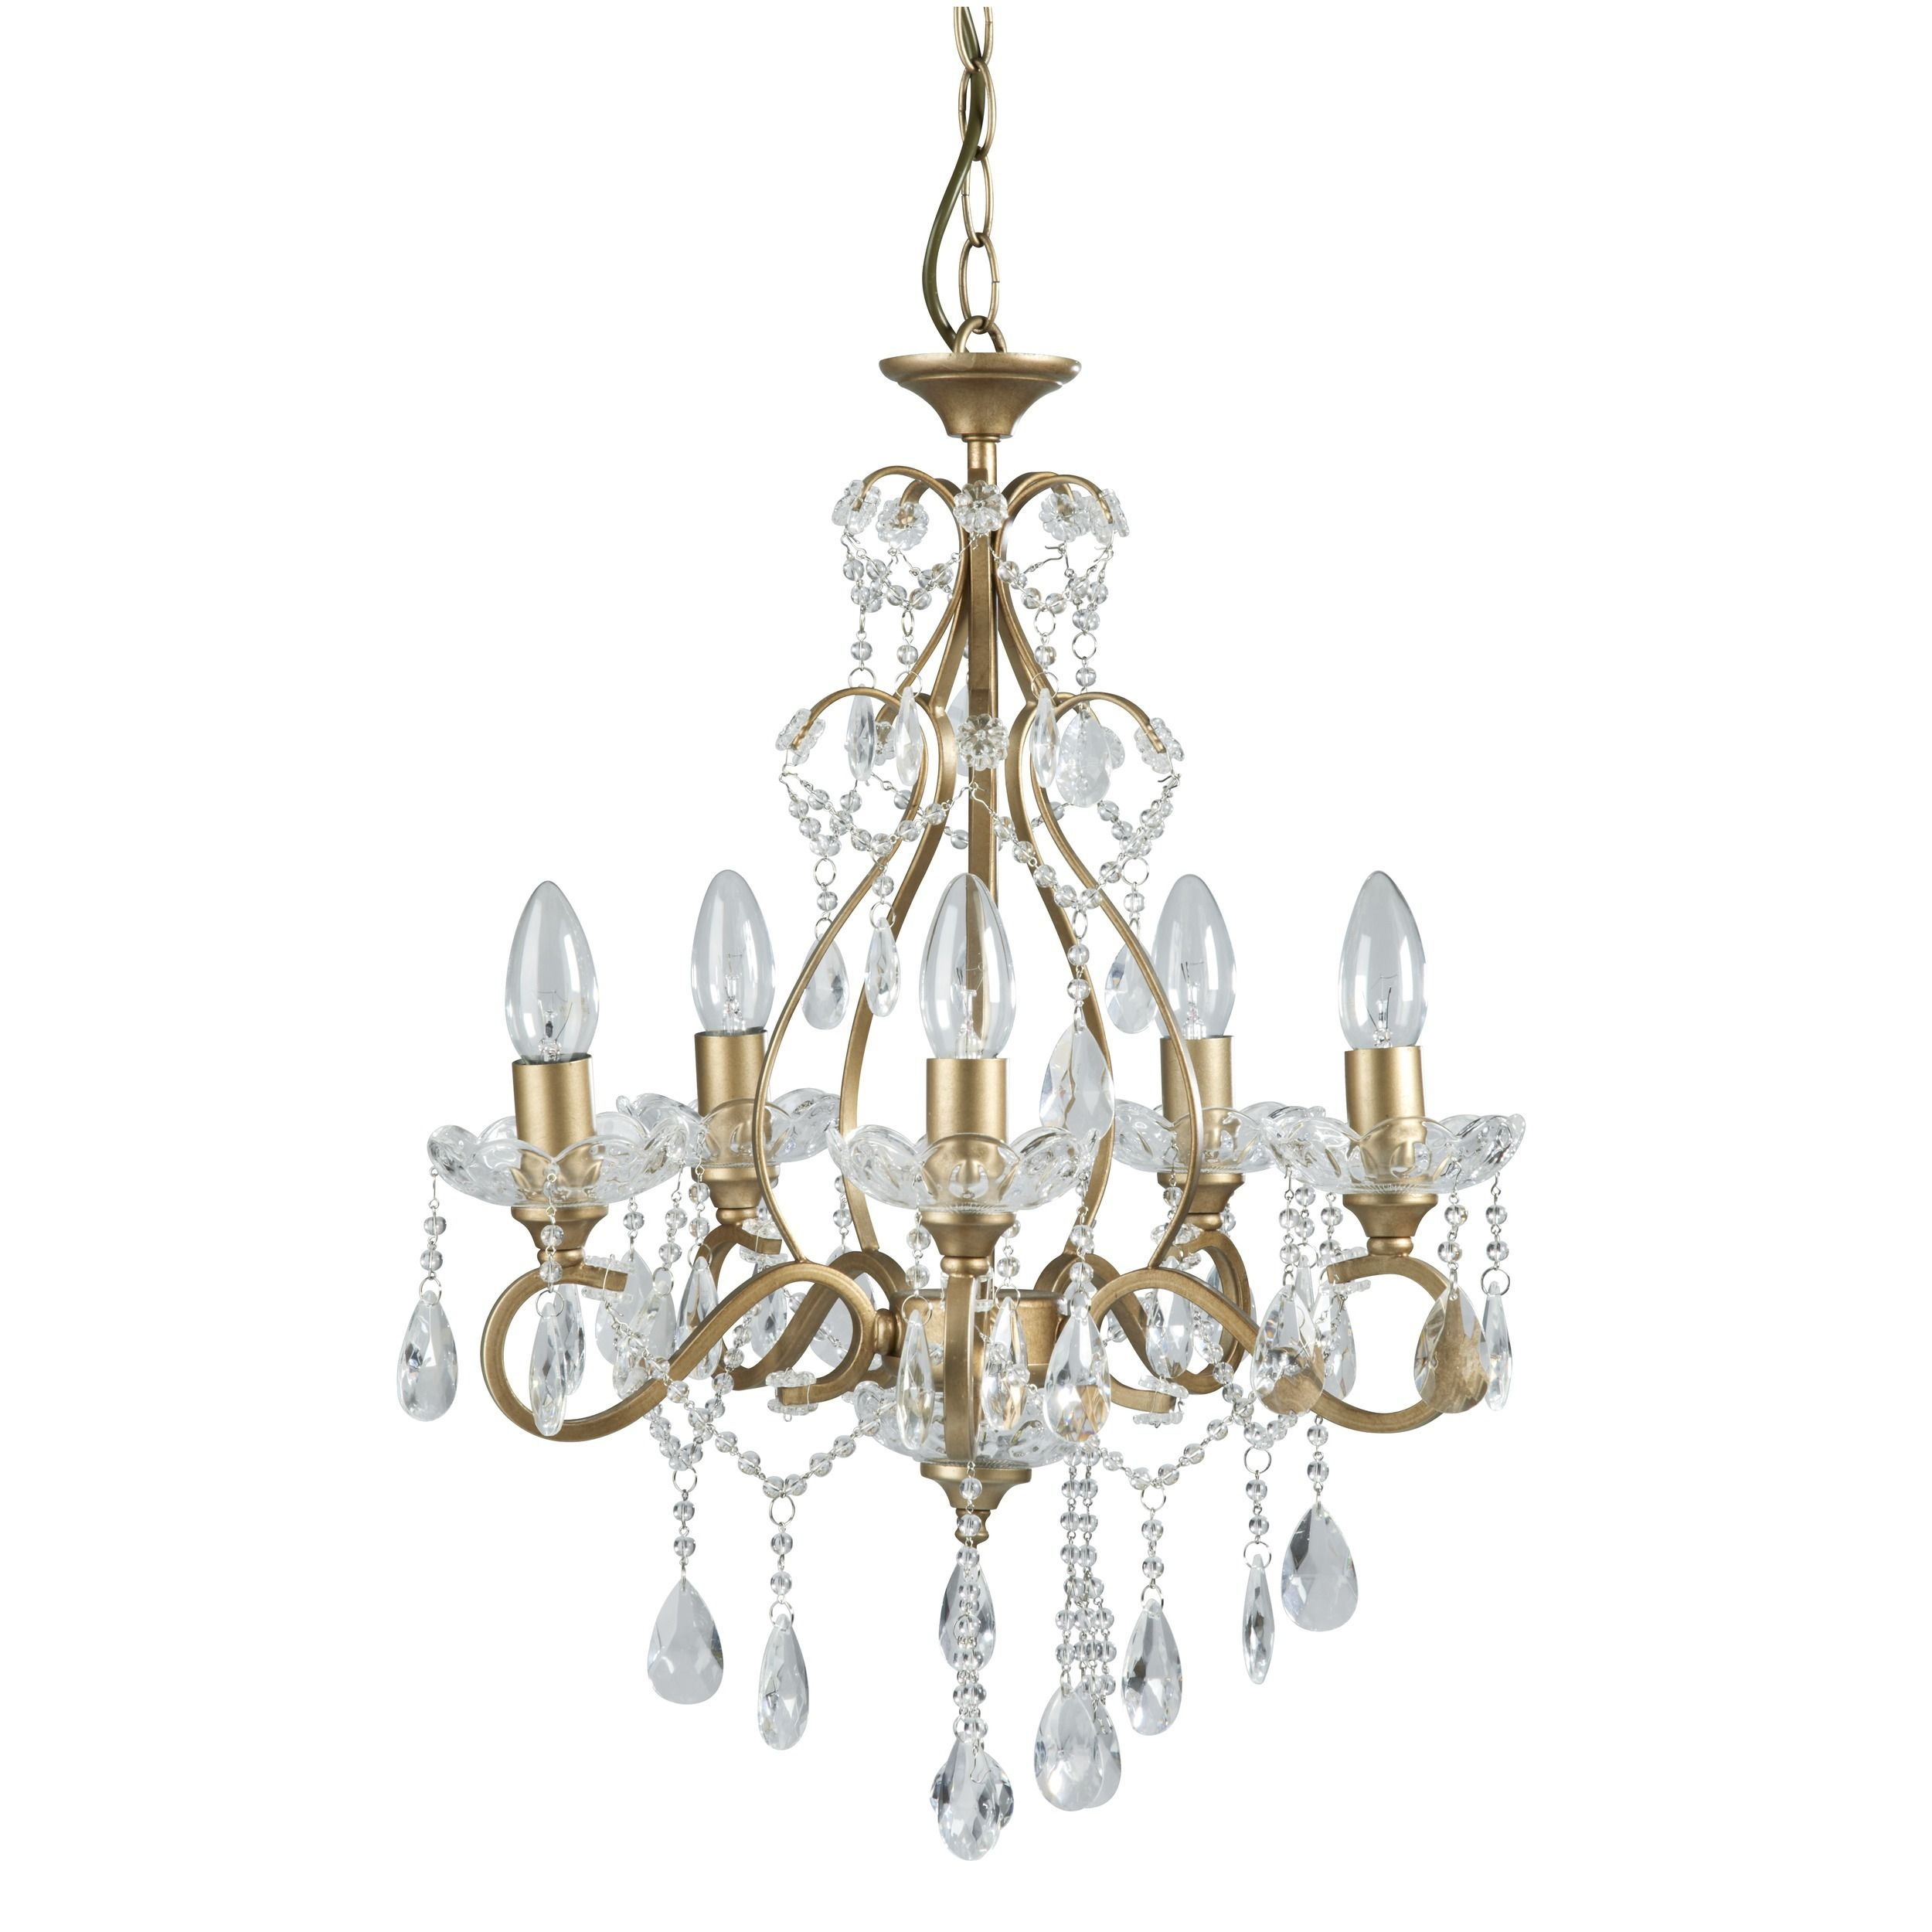 Crystal Chandelier Laura Ashley: Shamley Gold Compact 5 Arm Ceiling Chandelier At Laura